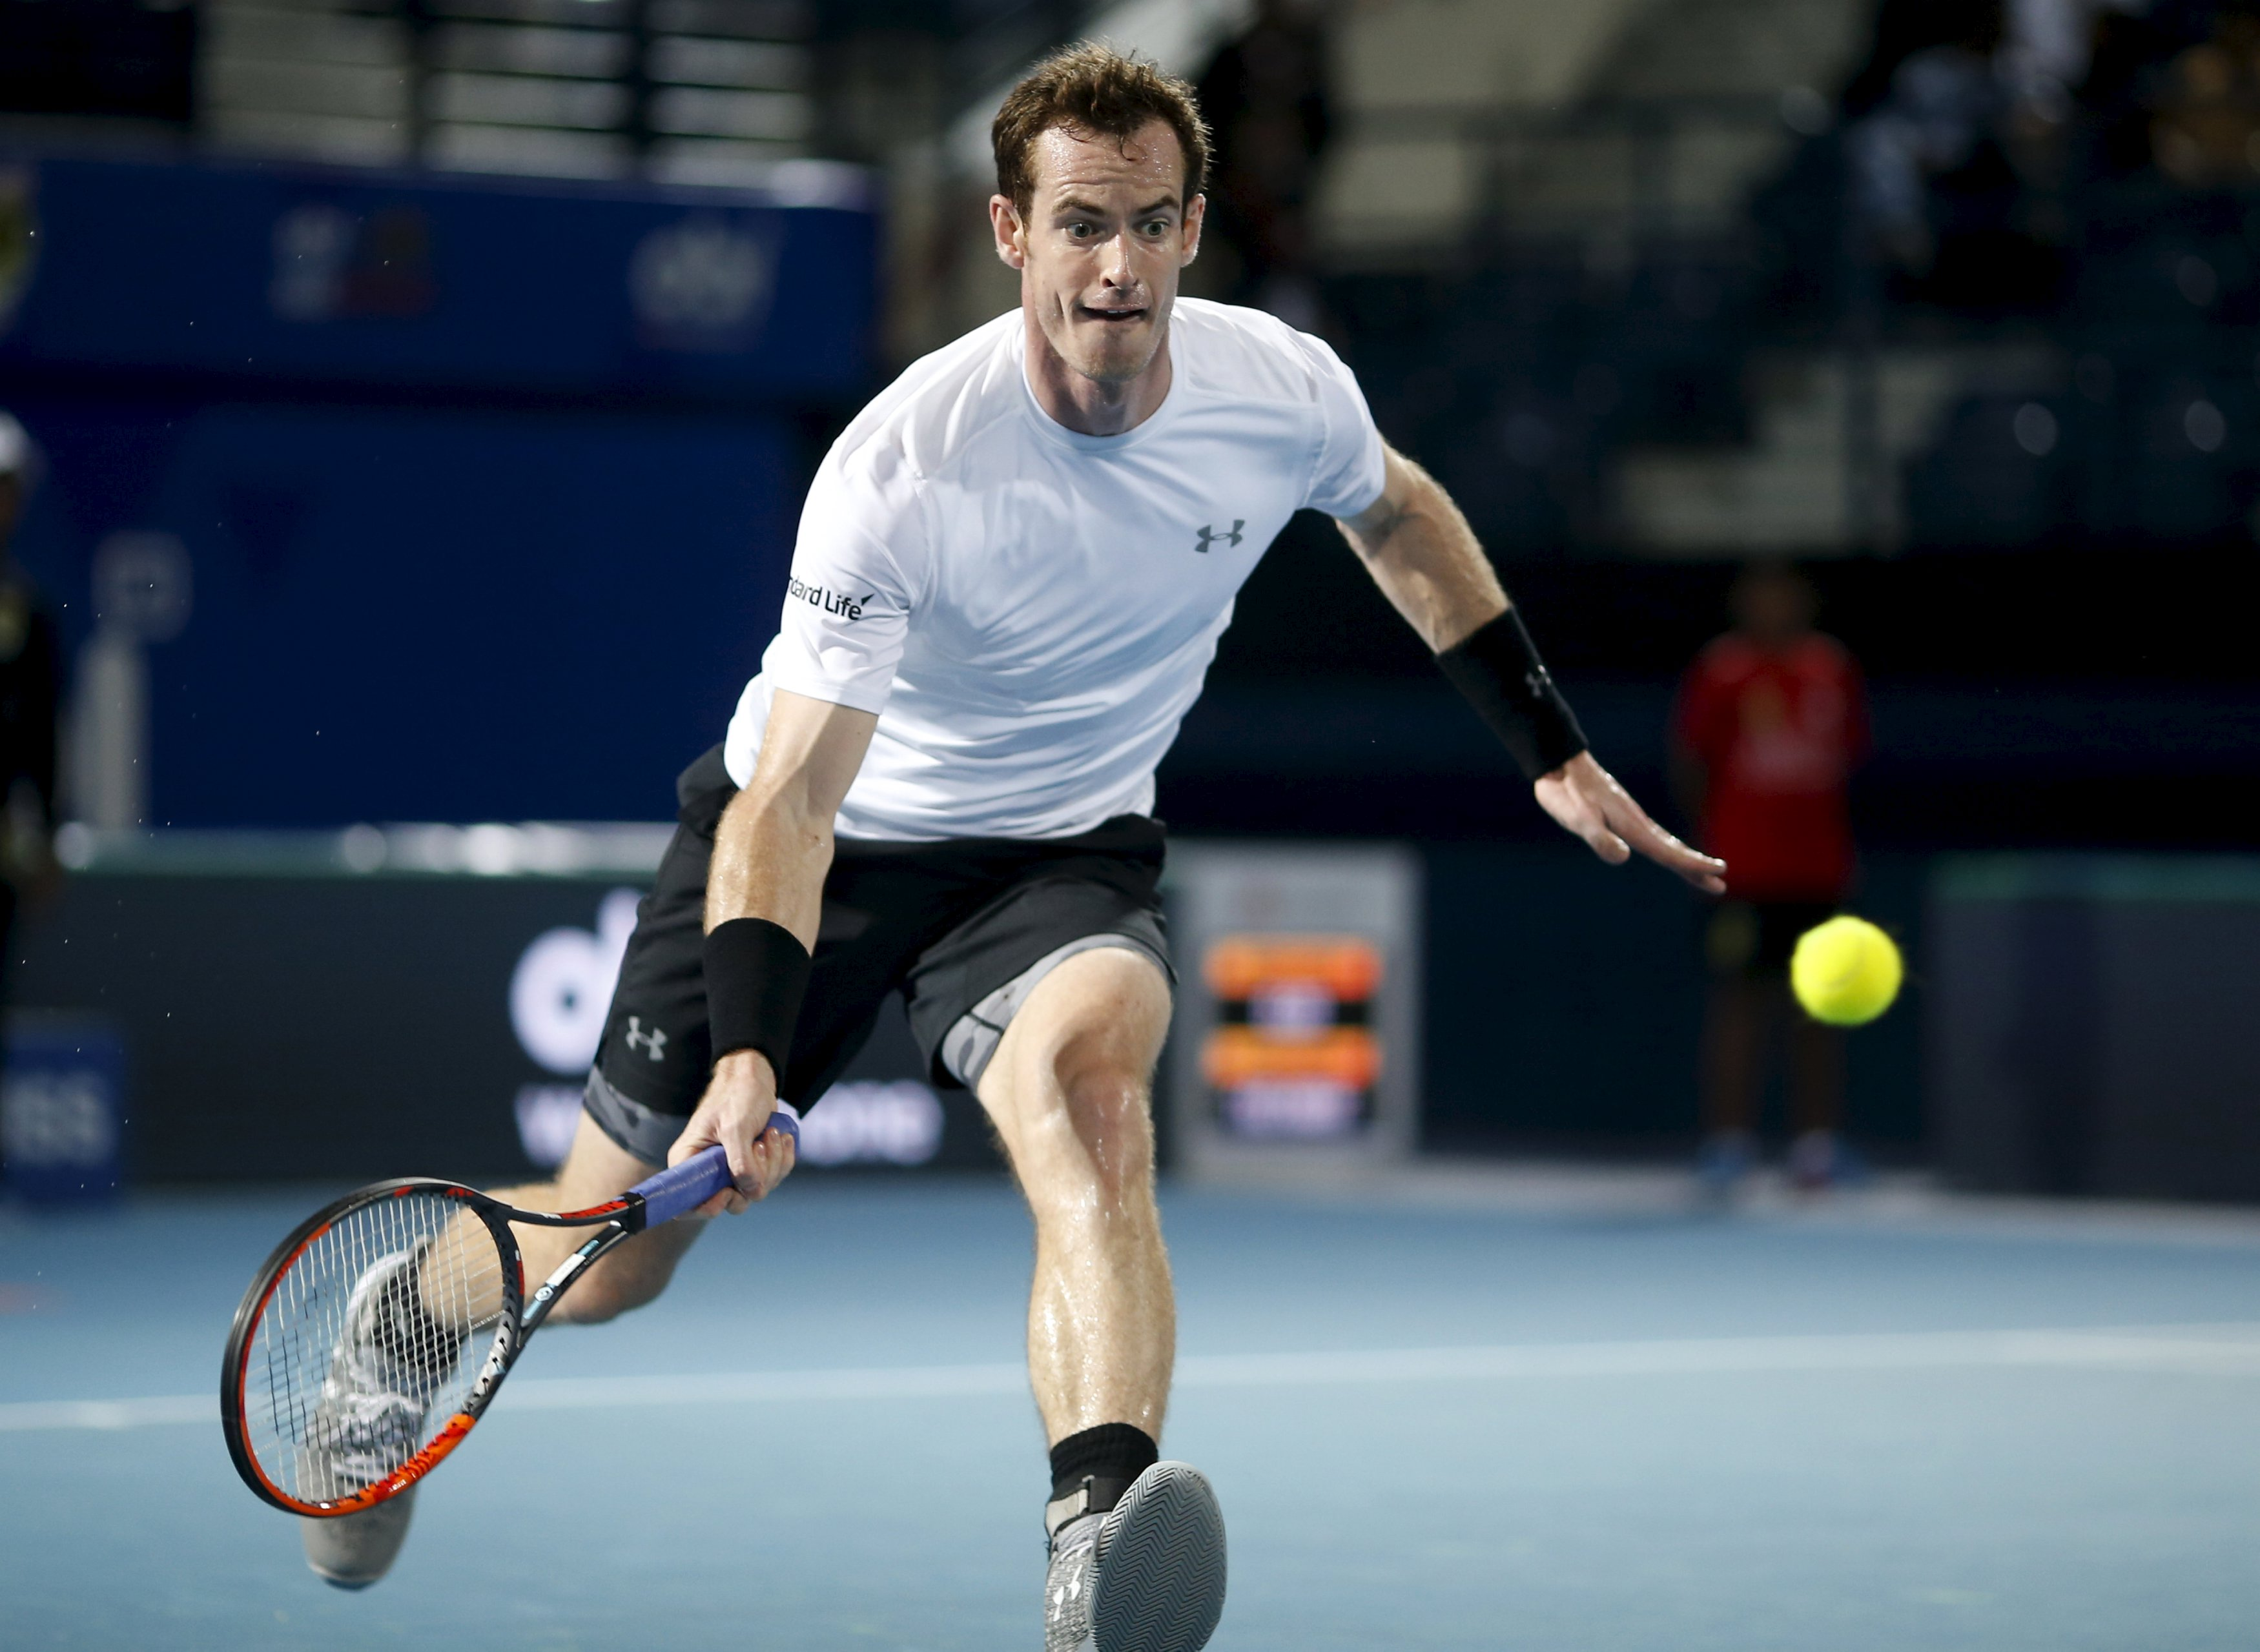 Andy Murray hits a return to Micromax Indian Aces' Bernard Tomic during their match at the International Premier Tennis League (IPTL) in Dubai, December 16, 2015. Photo: Reuters